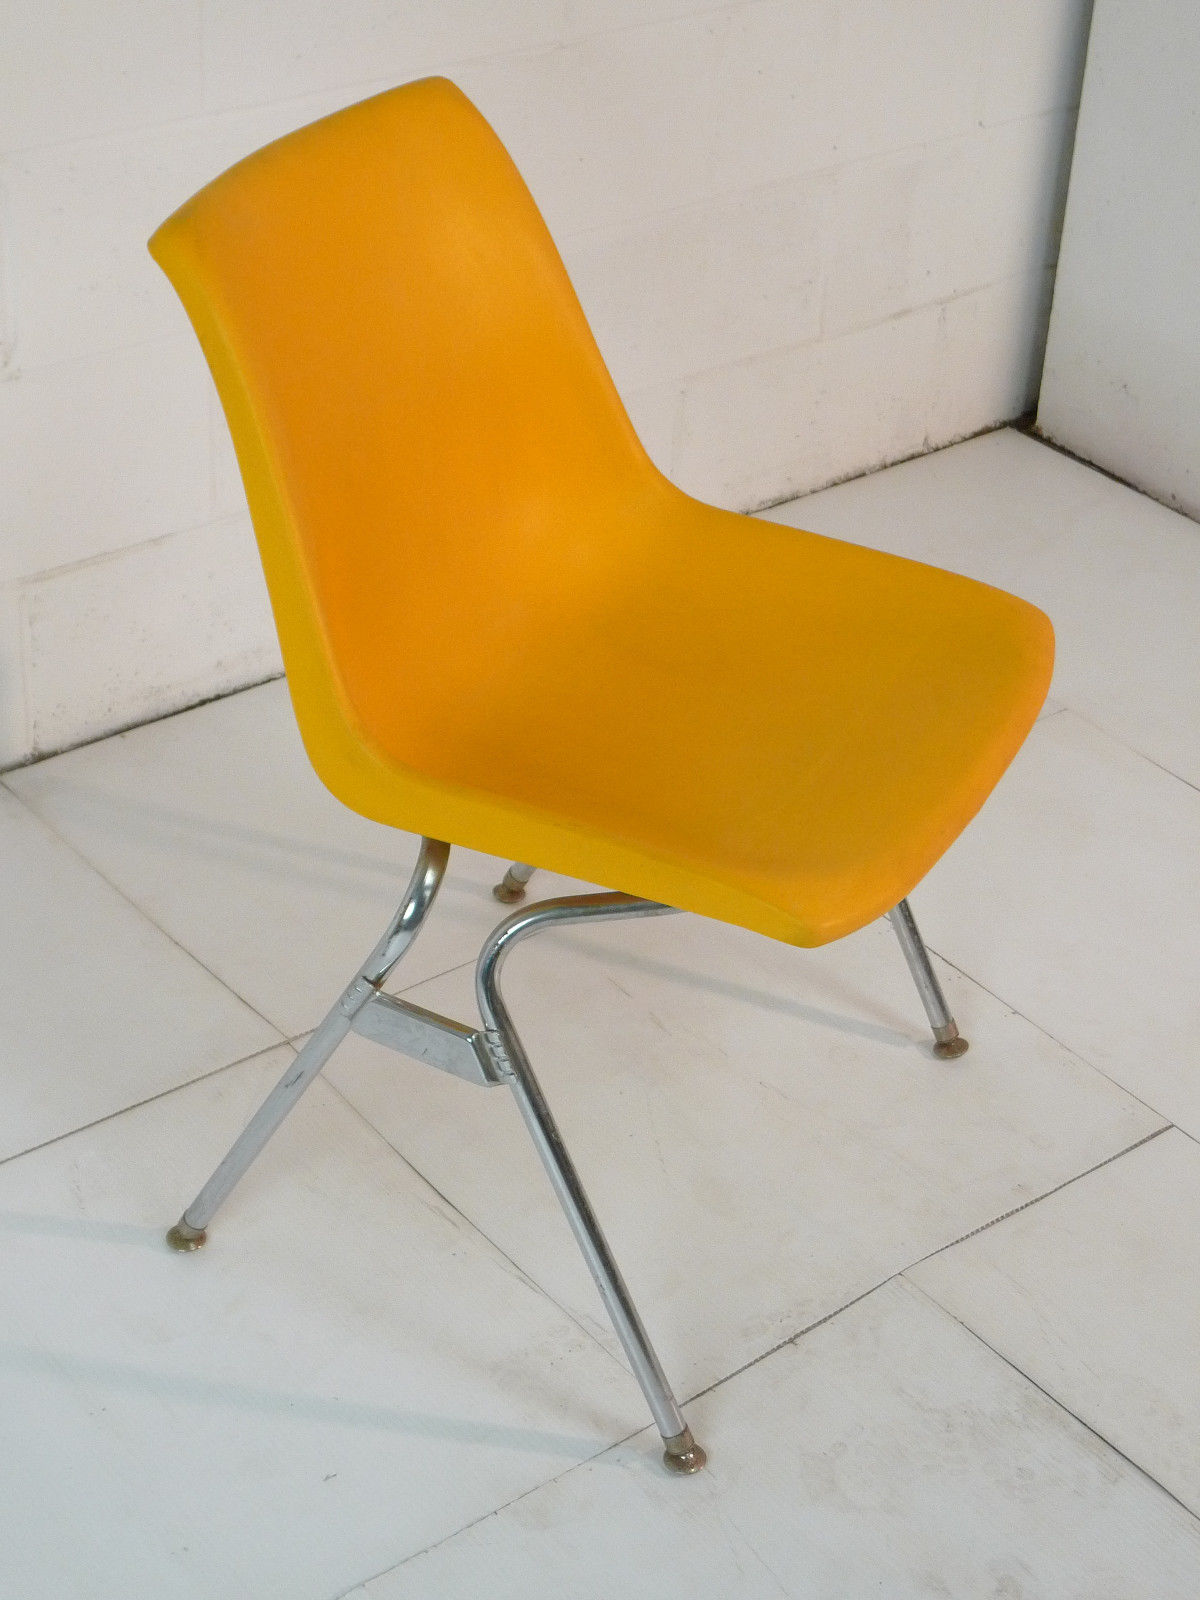 mid century modern plastic chairs green leather tufted chair yellow eames era 60 39s